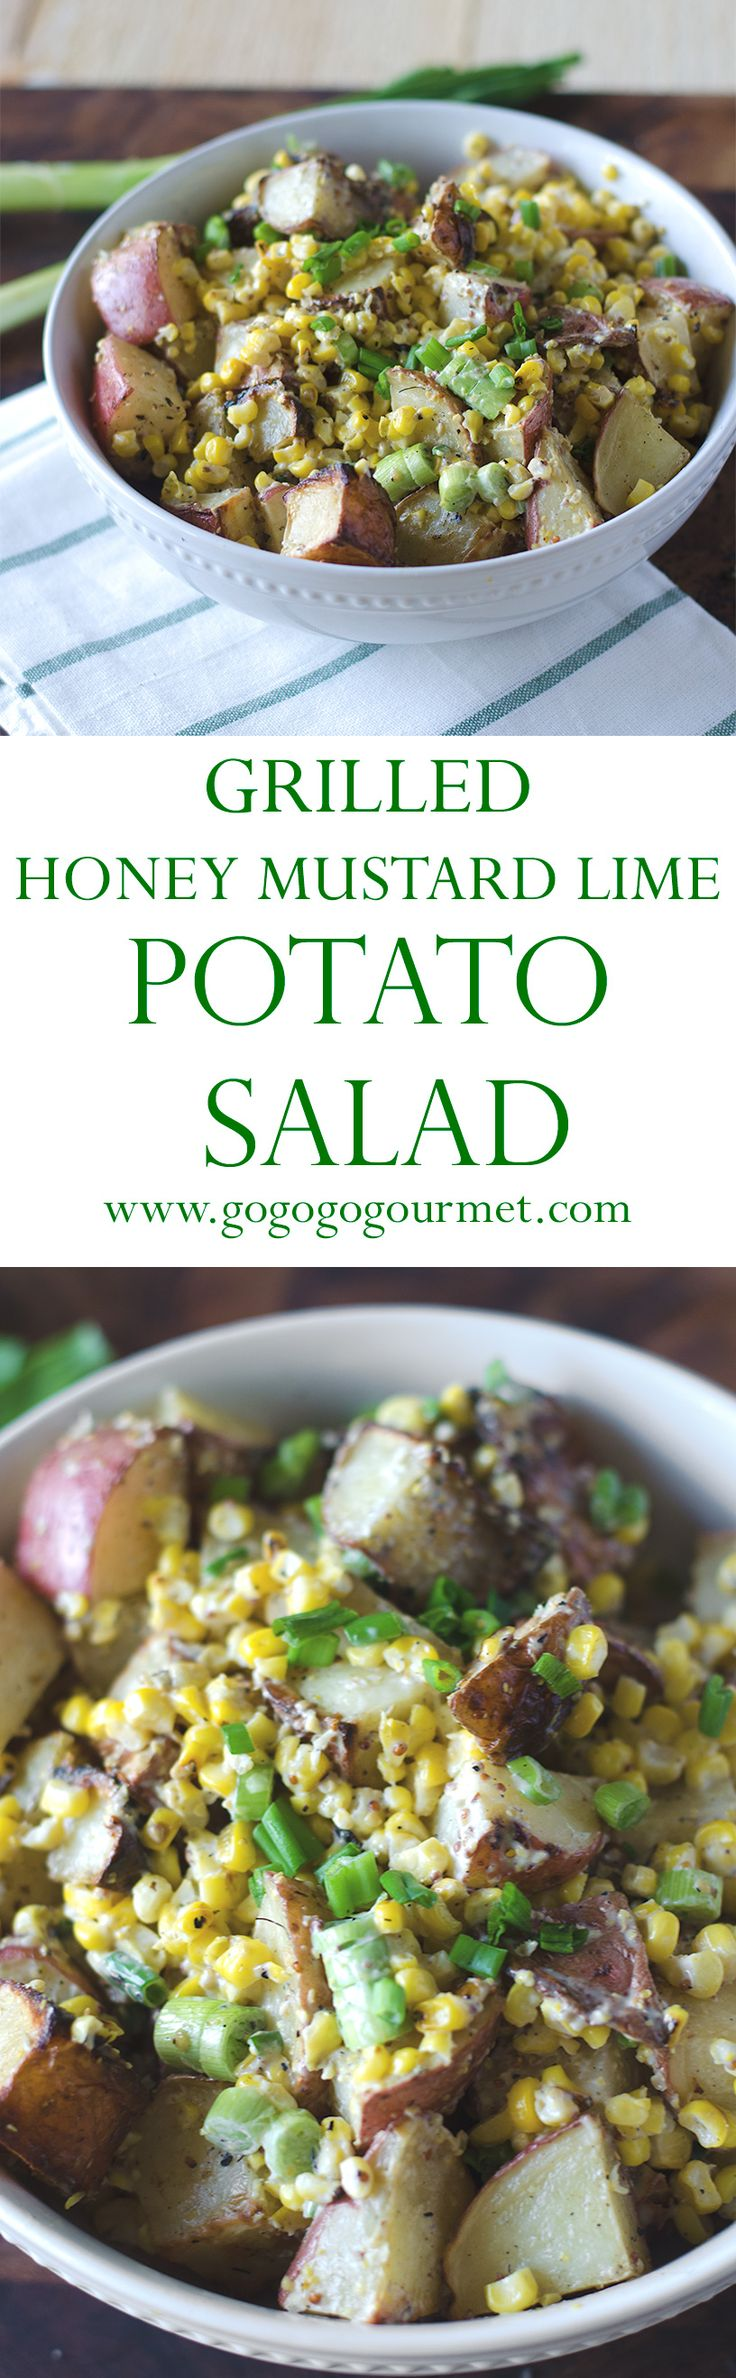 A different twist on potato salad- a grilled potato salad with honey mustard, summer corn and green onions. | Go Go Go Gourmet @gogogogourmet